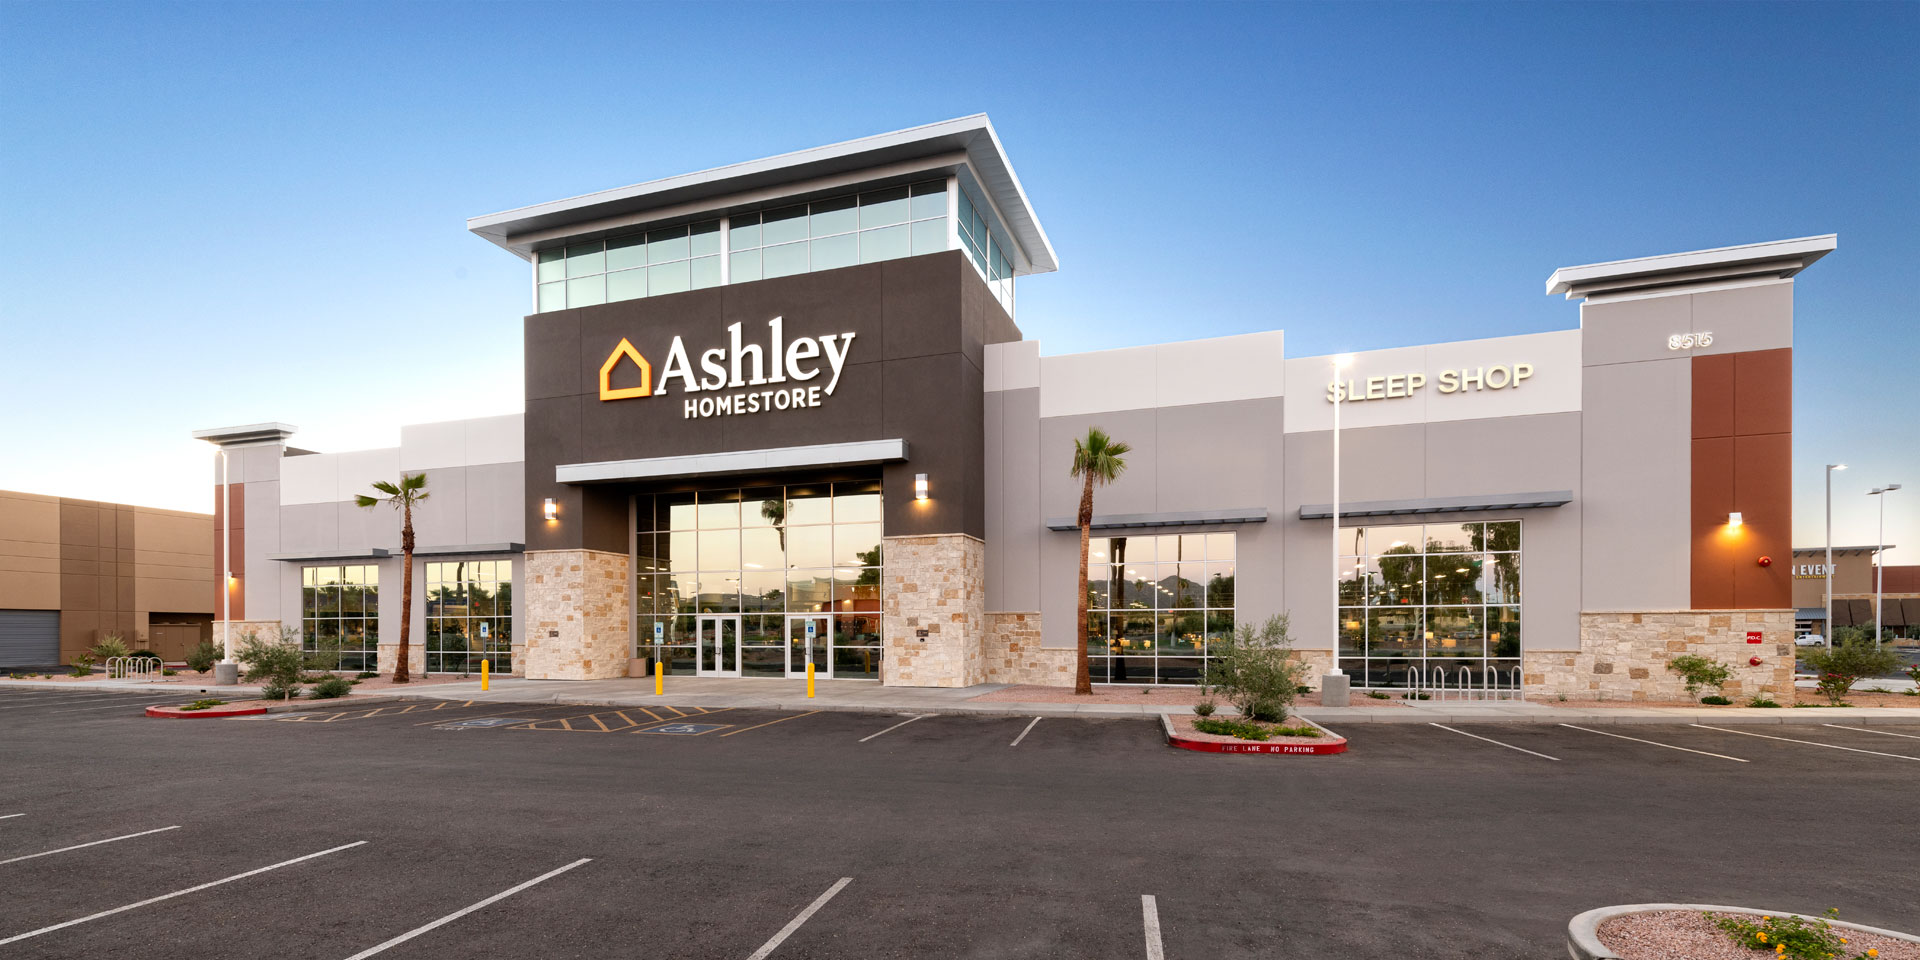 Ashley Furniture Homestore Cawley Architectscawley Architects